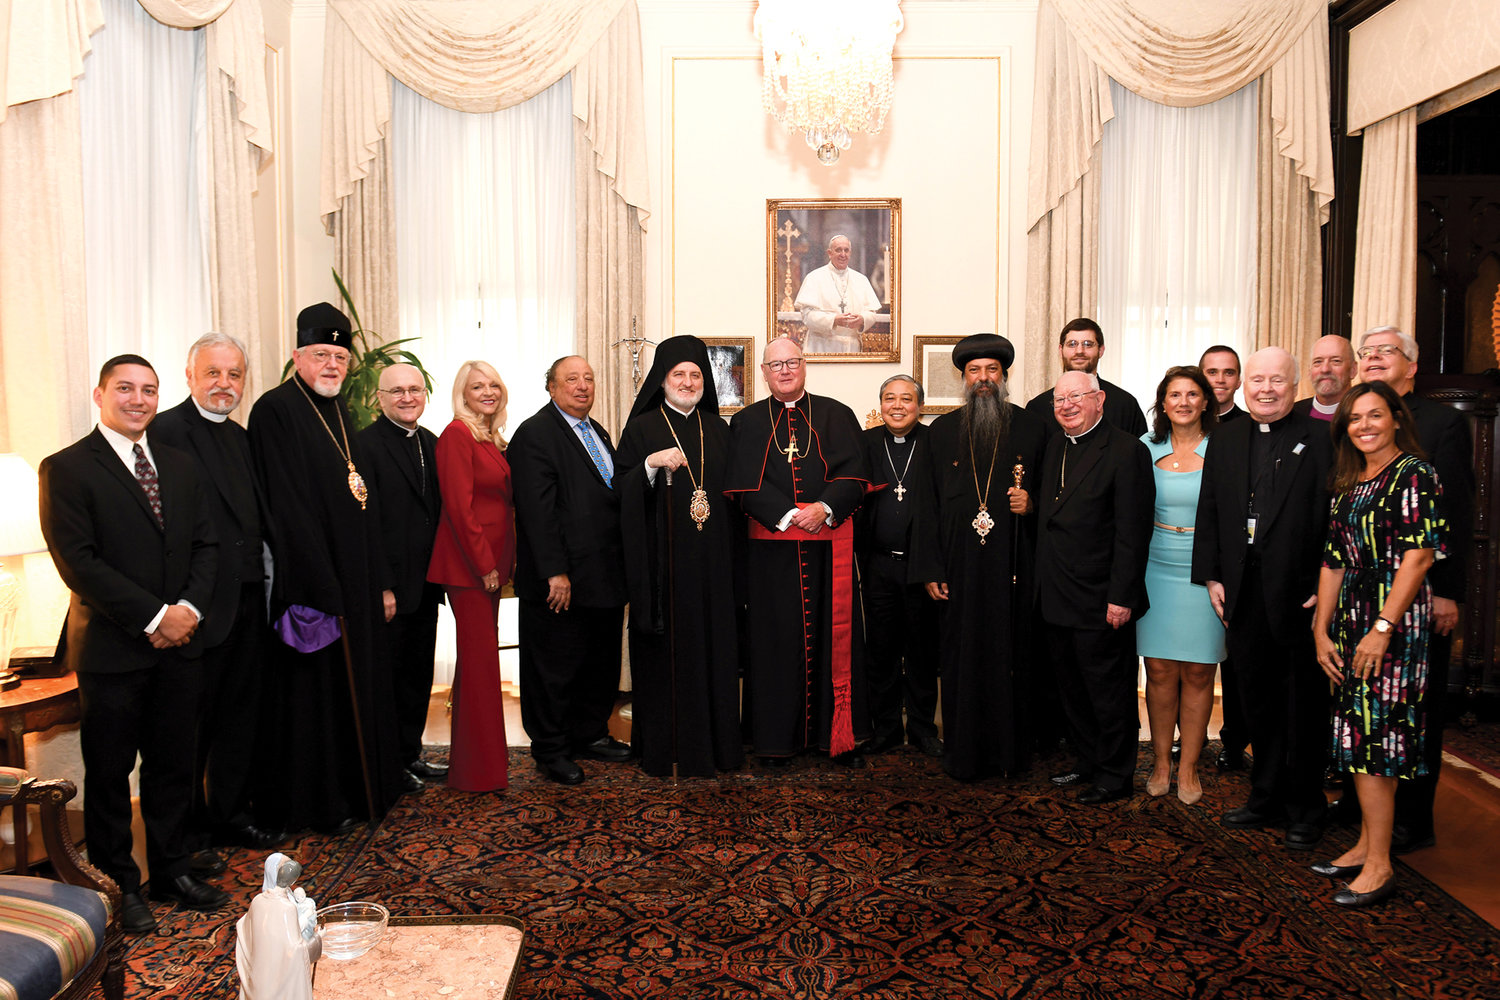 A large group of religious leaders and other representatives gather around Archbishop Elpidophoros and Cardinal Dolan. Next to the cardinal are Archbishop Auza, Bishop David of the Coptic Orthodox Diocese of New York and New England and retired Bishop William Murphy of the Diocese of Rockville Centre. Fourth from the left is Auxiliary Bishop James Massa of the Diocese of Brooklyn and fourth from the right is Father Brian McWeeney, director of ecumenical and interreligious affairs for the archdiocese.